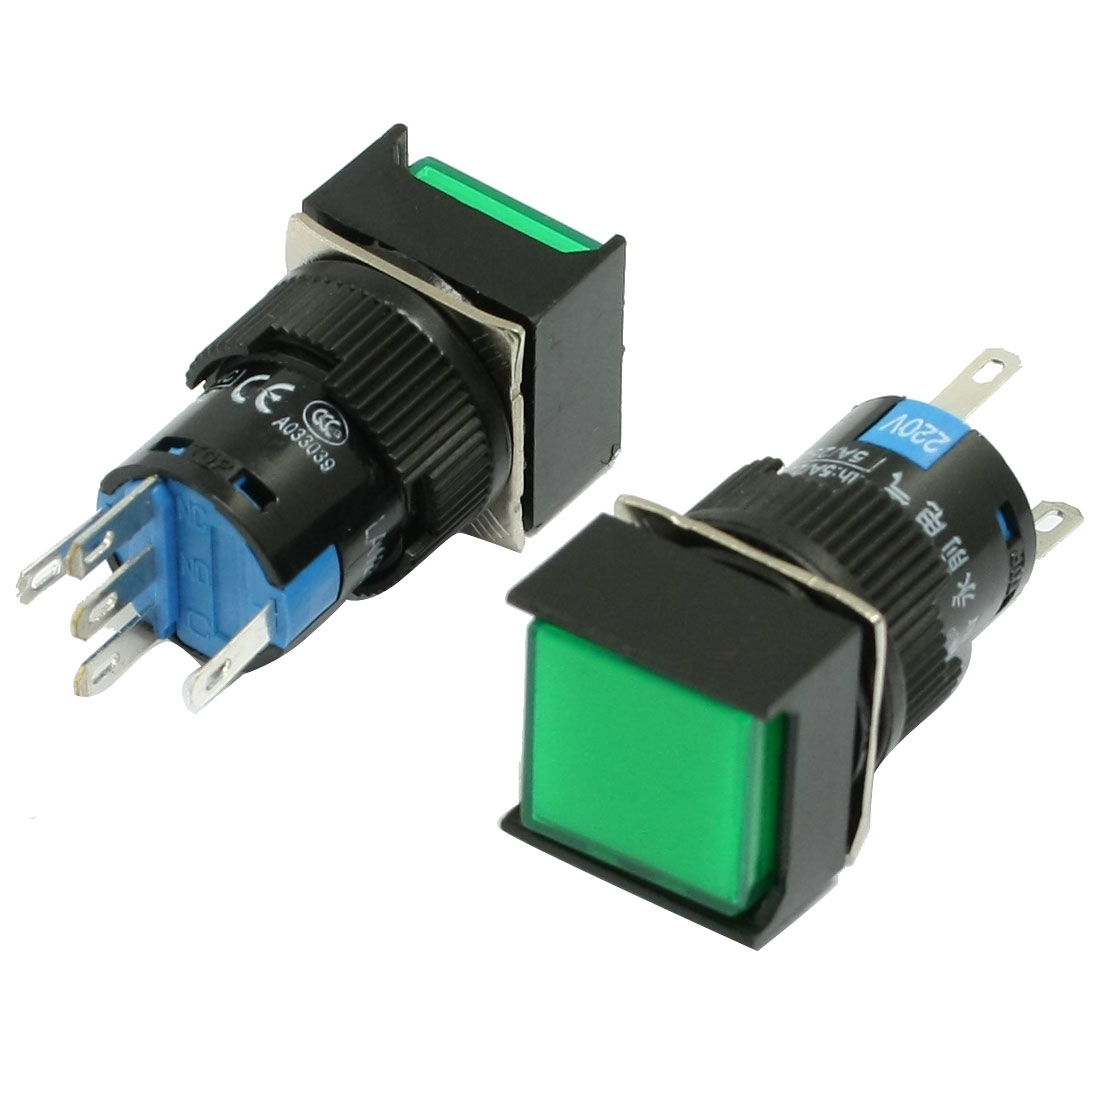 2-x-5-Pin-Terminals-Green-Lamp-Square-Cap-Momentary-Push-Button-Switch-AC-220V